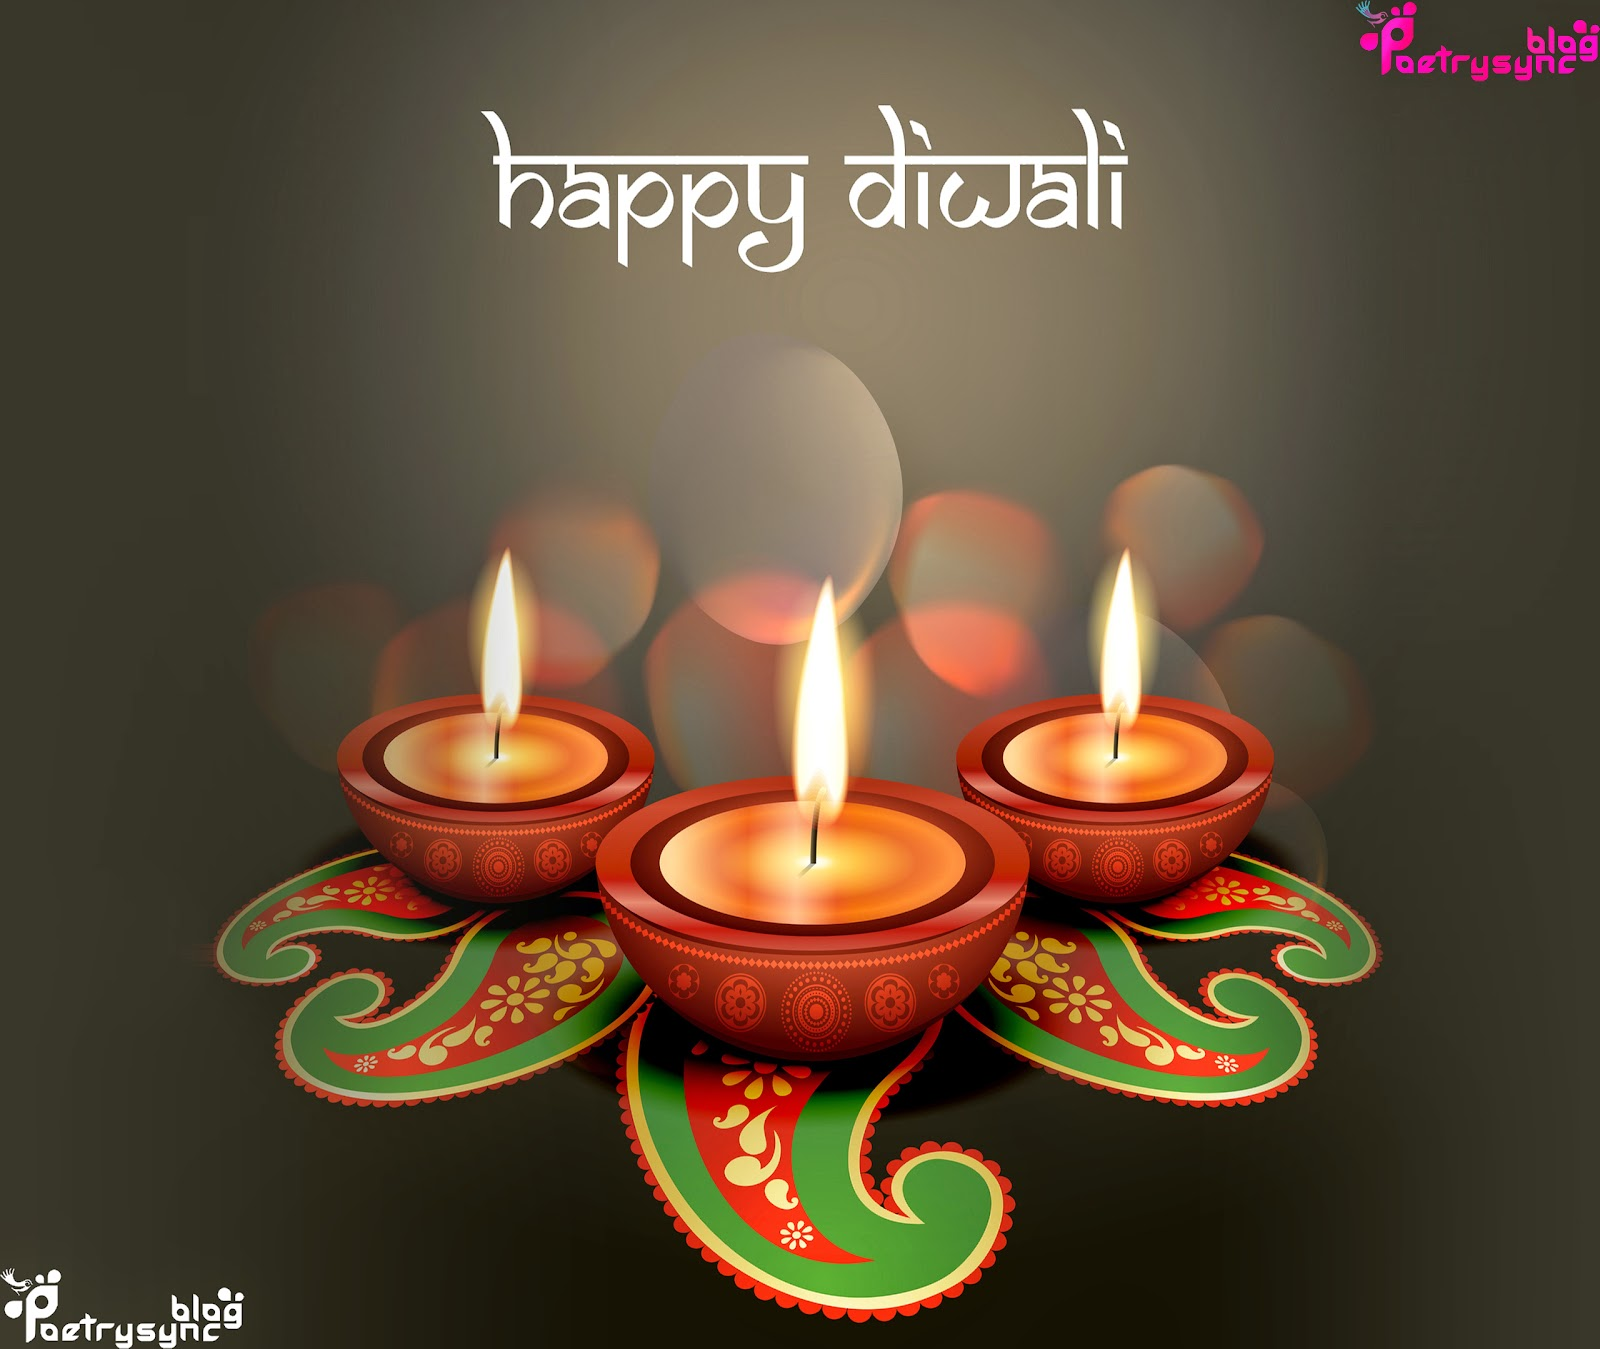 Happy Deepavali Quotes In English: Happy Diwali Festival Wallpapers With Wishes Messages In